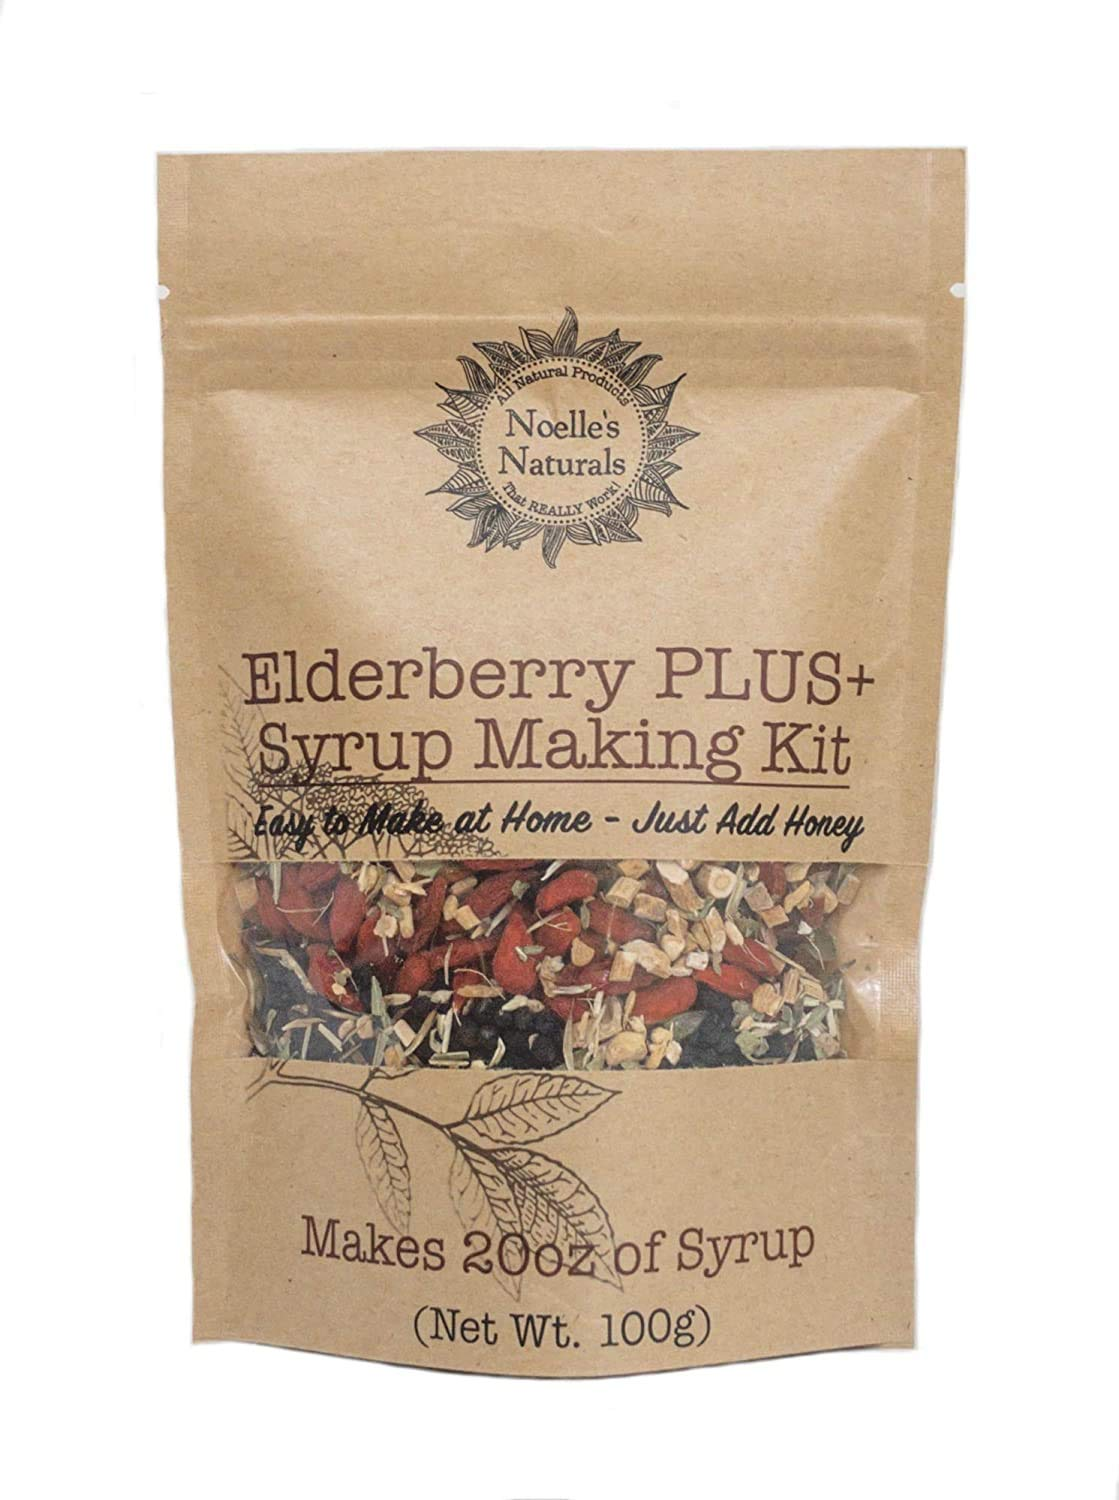 B079SZ9N7Z Noelle's Naturals Organic Elderberry Syrup Making Kit - Makes 20oz of syrup, Our Concentrated Recipe is Easy to make, PLUS Goji, Echinacea, Astragalus, Rose hips, Ginger, Cloves & Cinnamon 71E5TcQI3uL